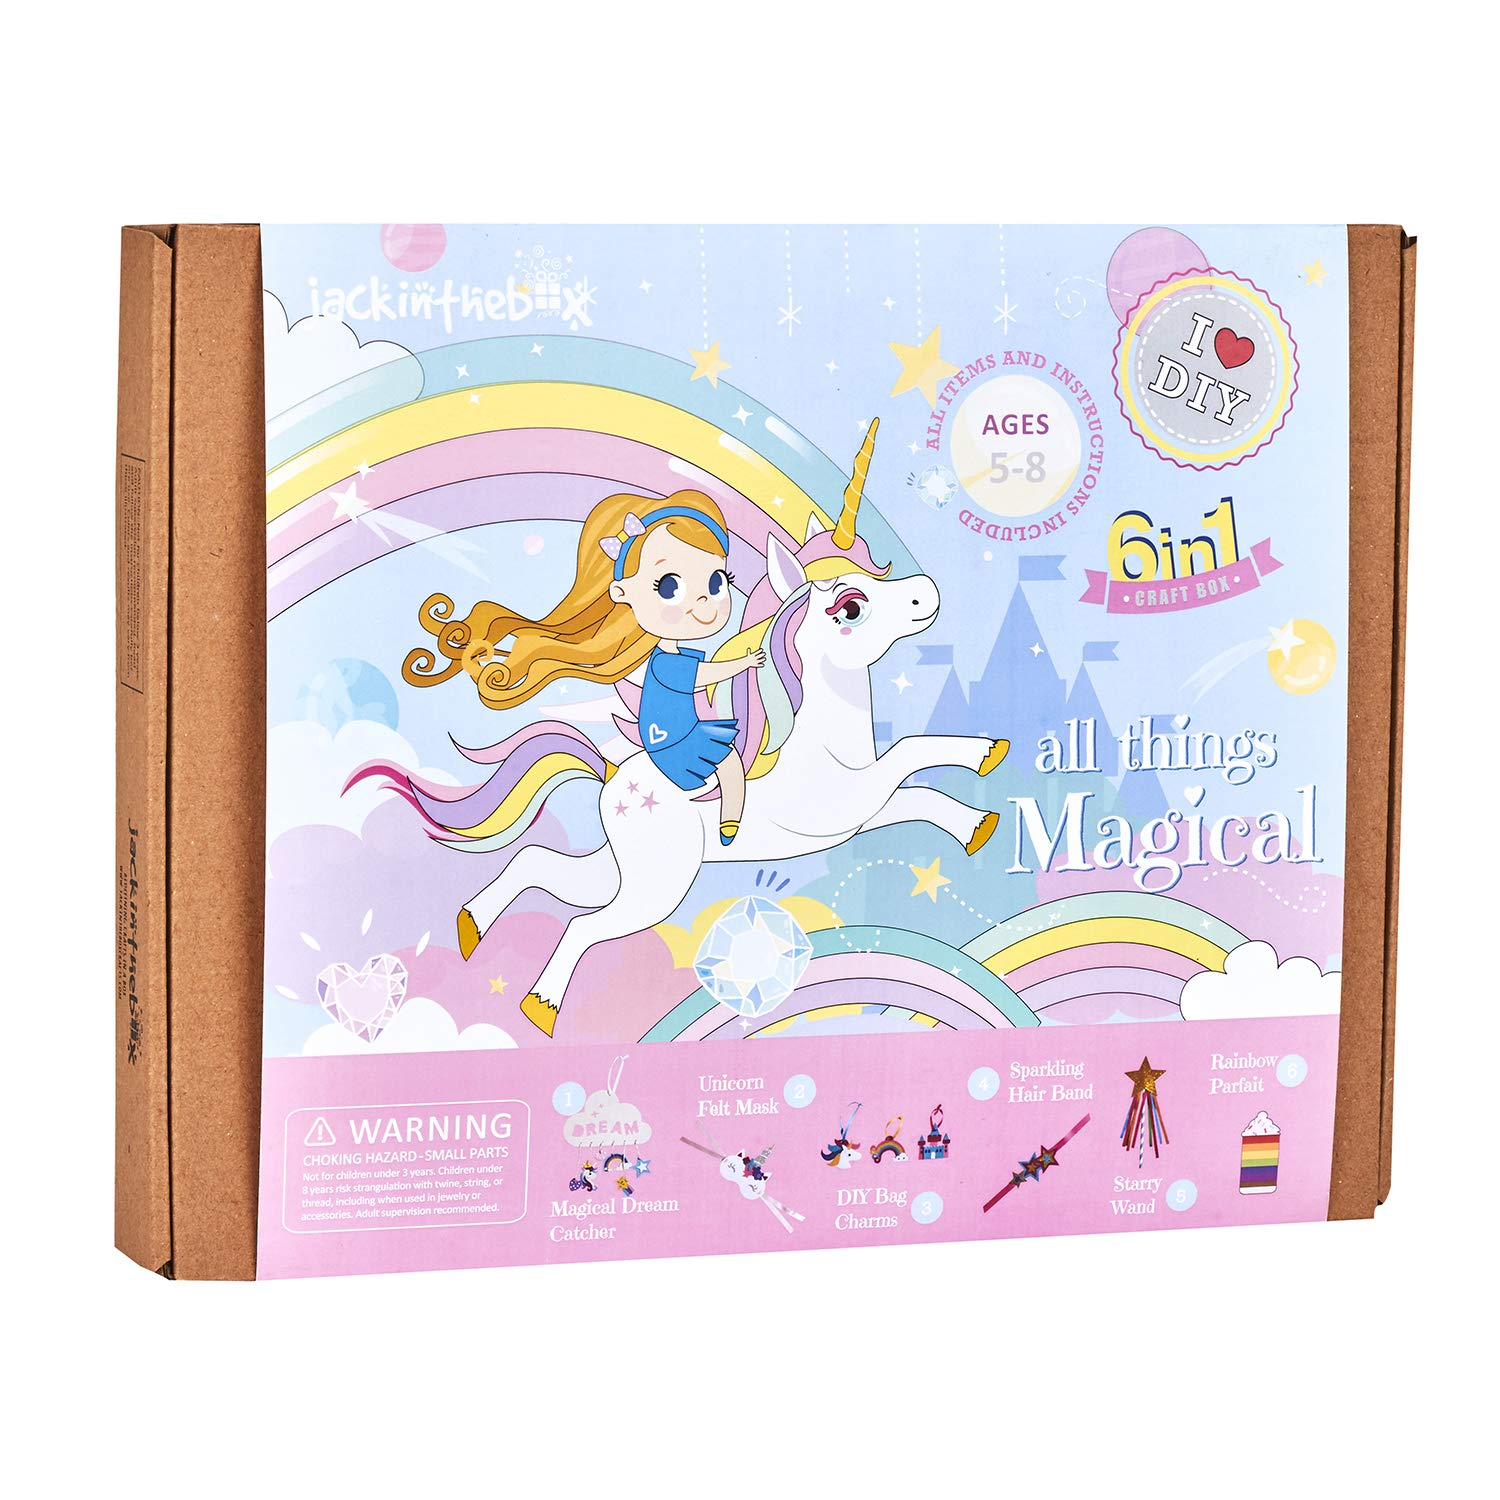 Unicorn Themed Art and Craft Kit for Girls | 6 Craft Projects-in-1 | Best Girl Gift for Ages 5 to 8 Years | Includes Beautiful Felt and Foam Embellishments by jackinthebox